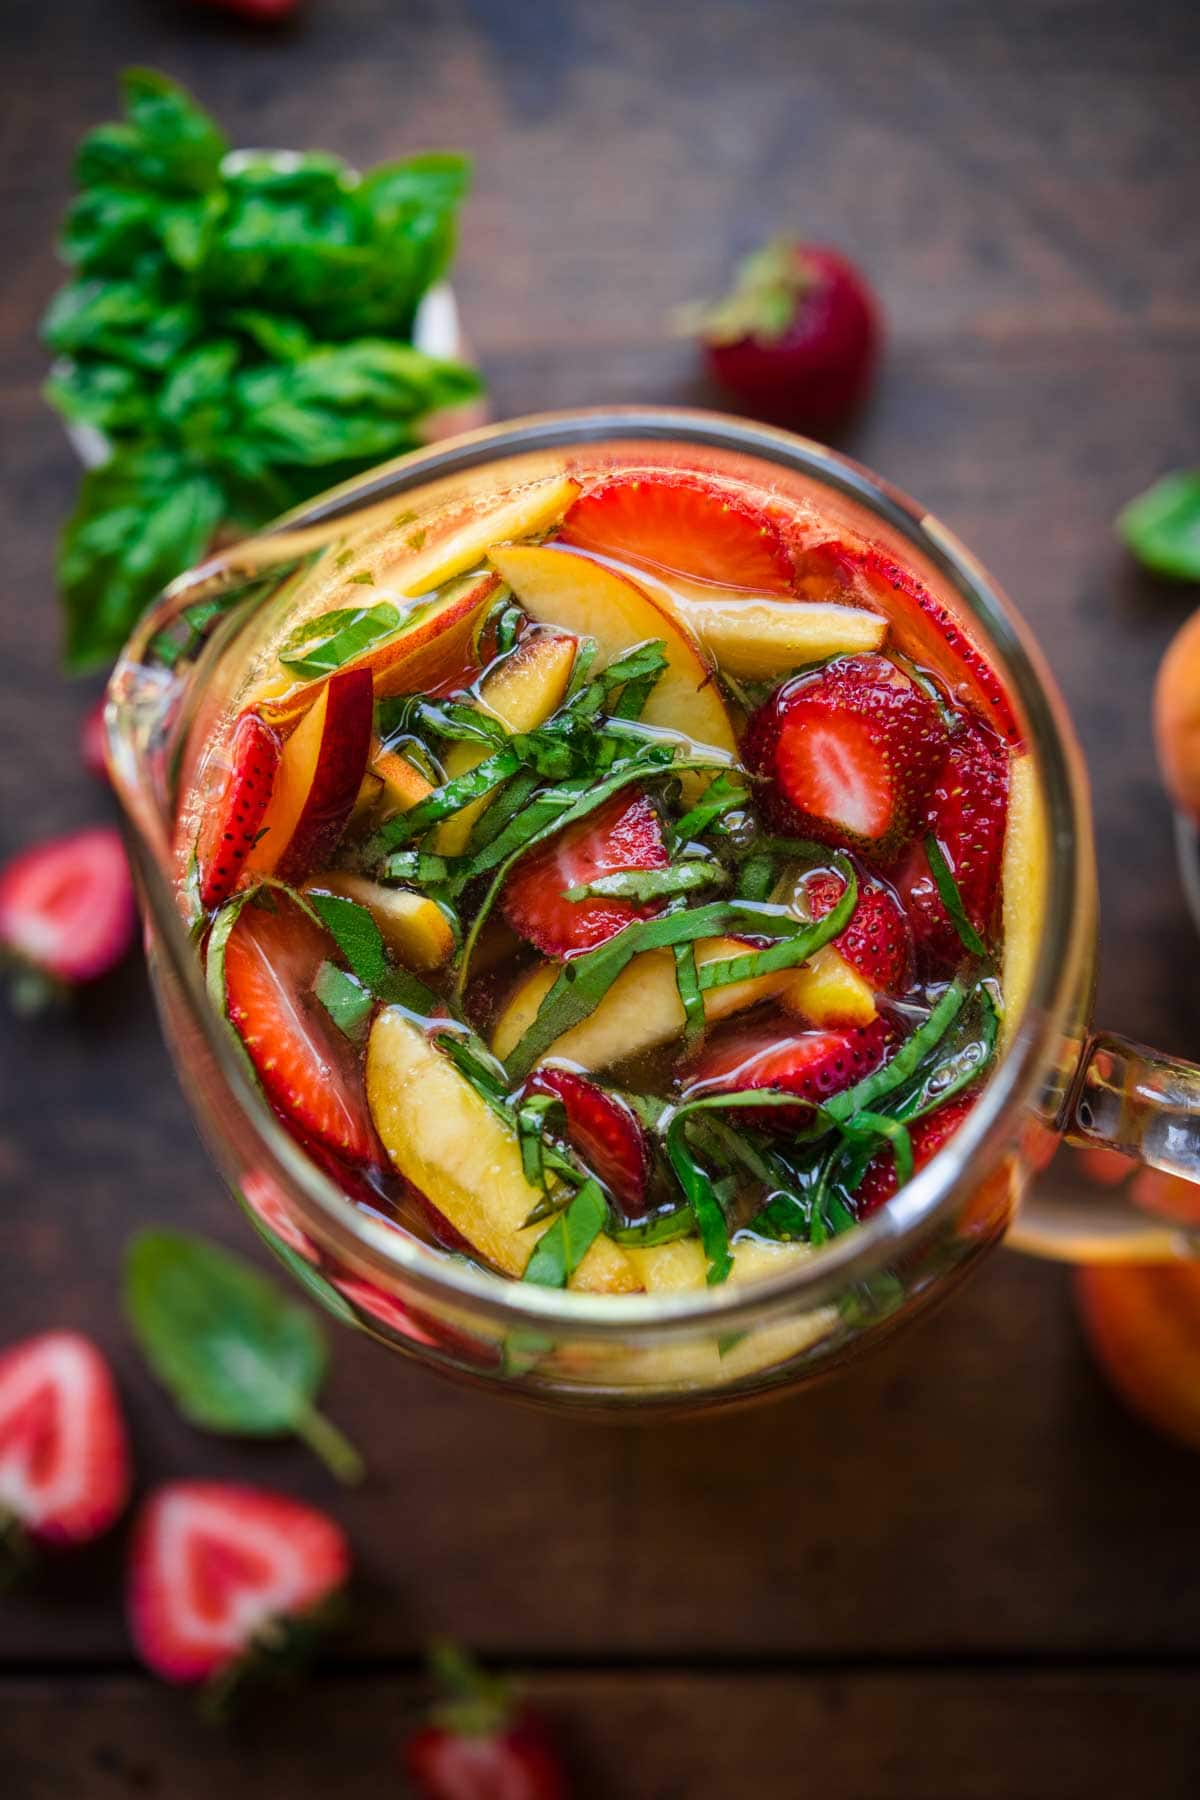 Overhead view of a pitcher of sangria with cut up strawberries, peaches, and basil.